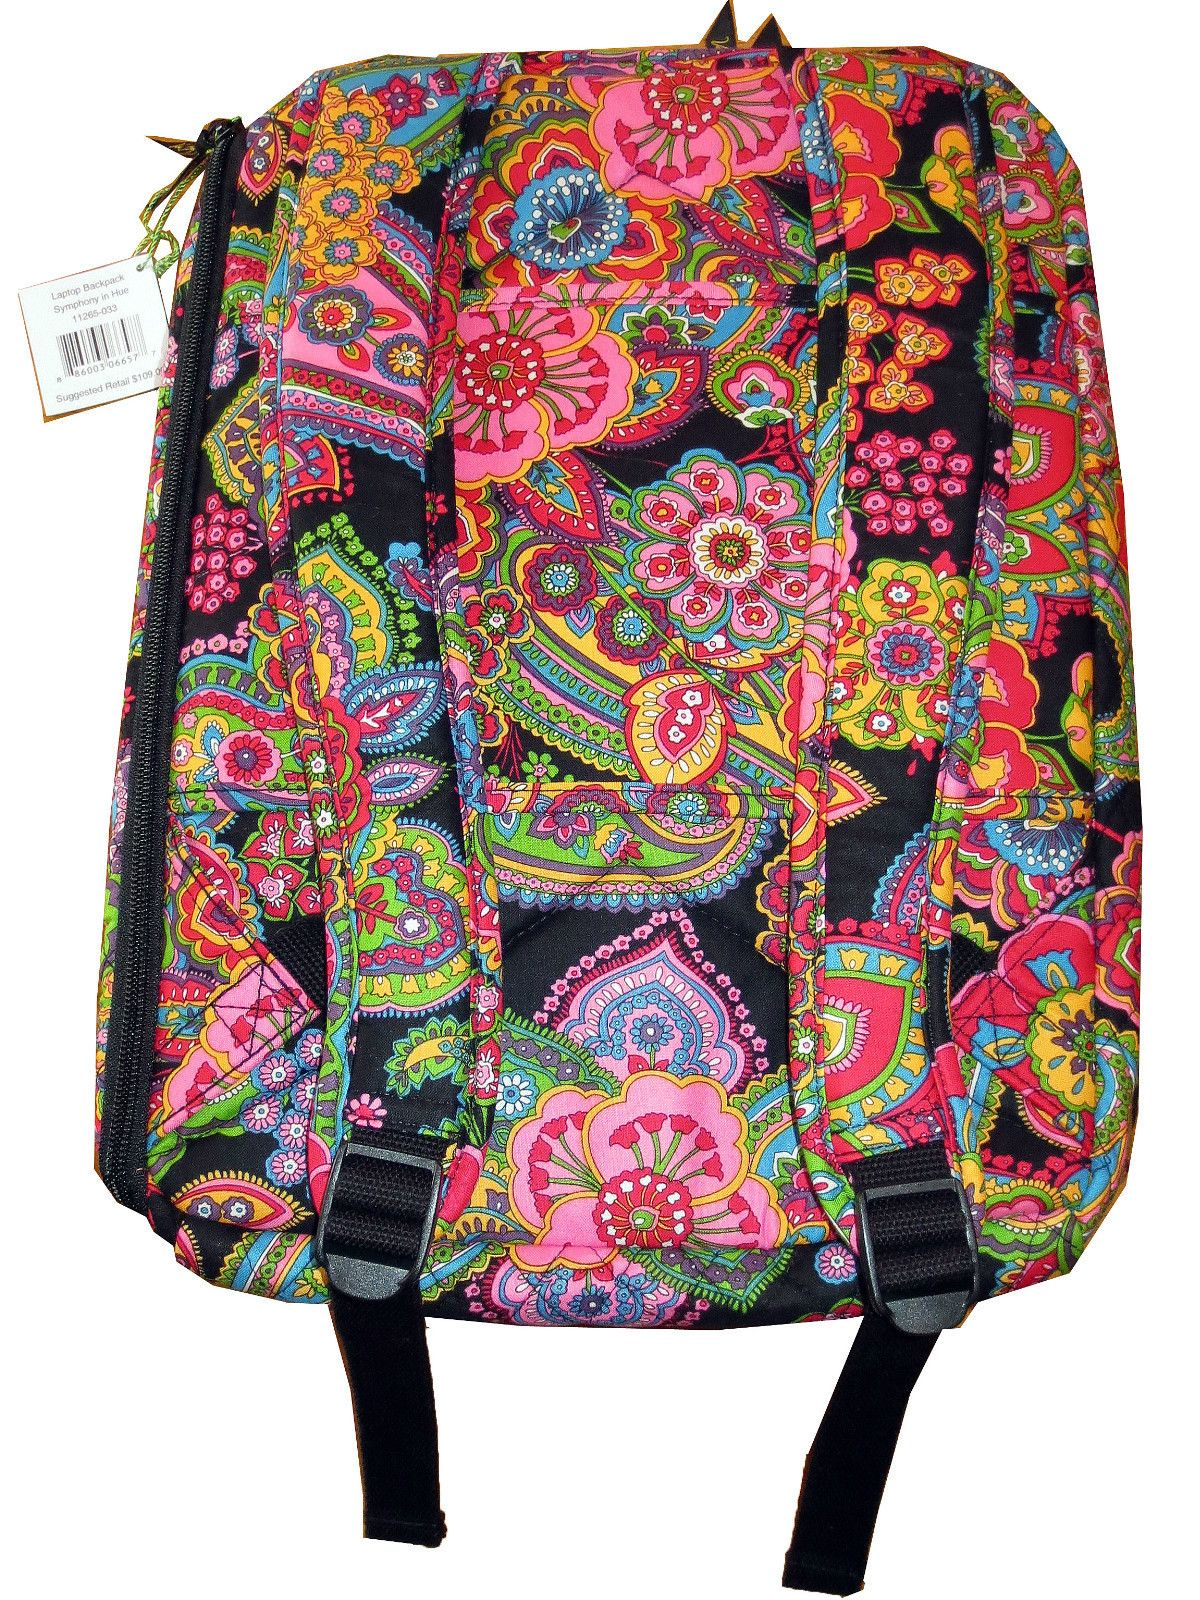 8106fa877add Vera Bradley Laptop Backpack in Symphony in Hue Retired Pattern Brand New ~  BACK TO SCHOOL COLLEGE SALE!